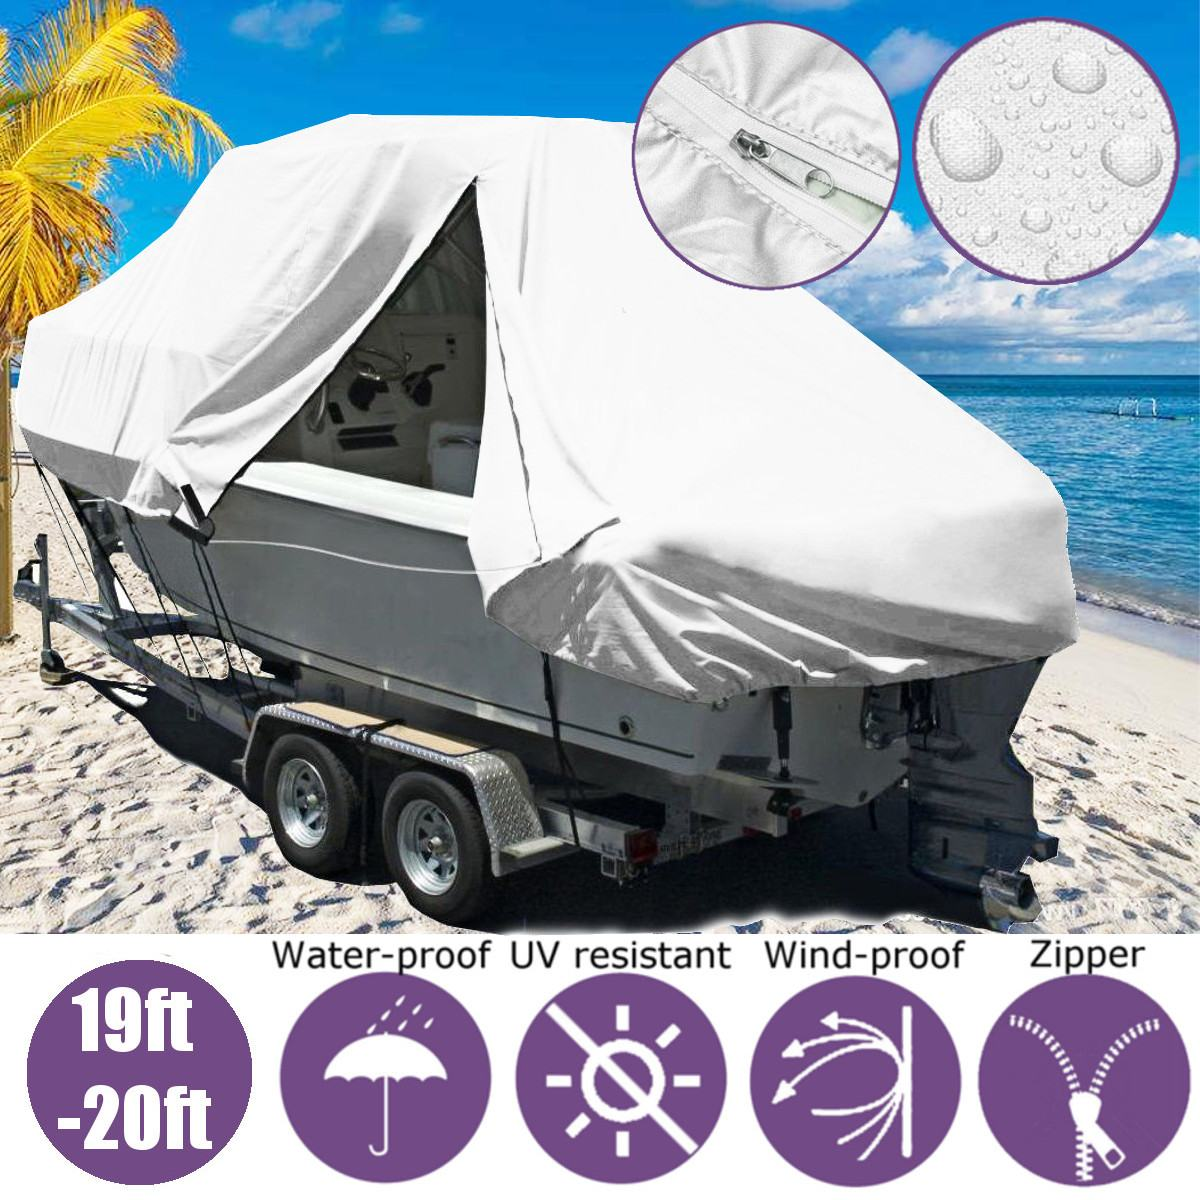 19-20ft 5.8-6.1m Marine Boat Yacht New Design Premium Heavy Duty 600D Trailerable Jumbo Boat Cover image